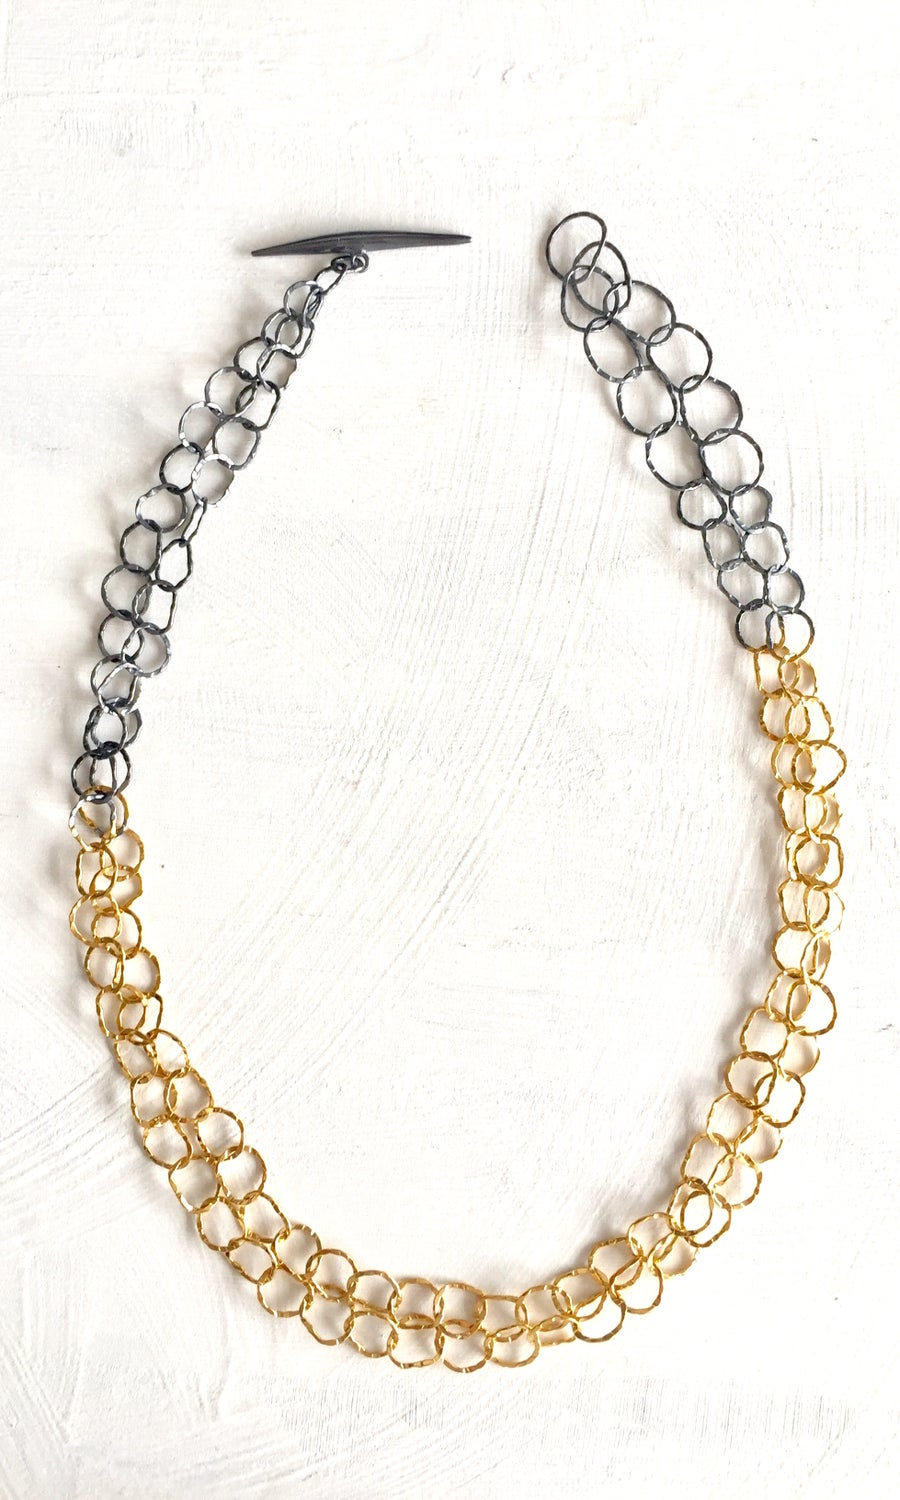 Image of Afiok Double Two-Tone Necklace #1